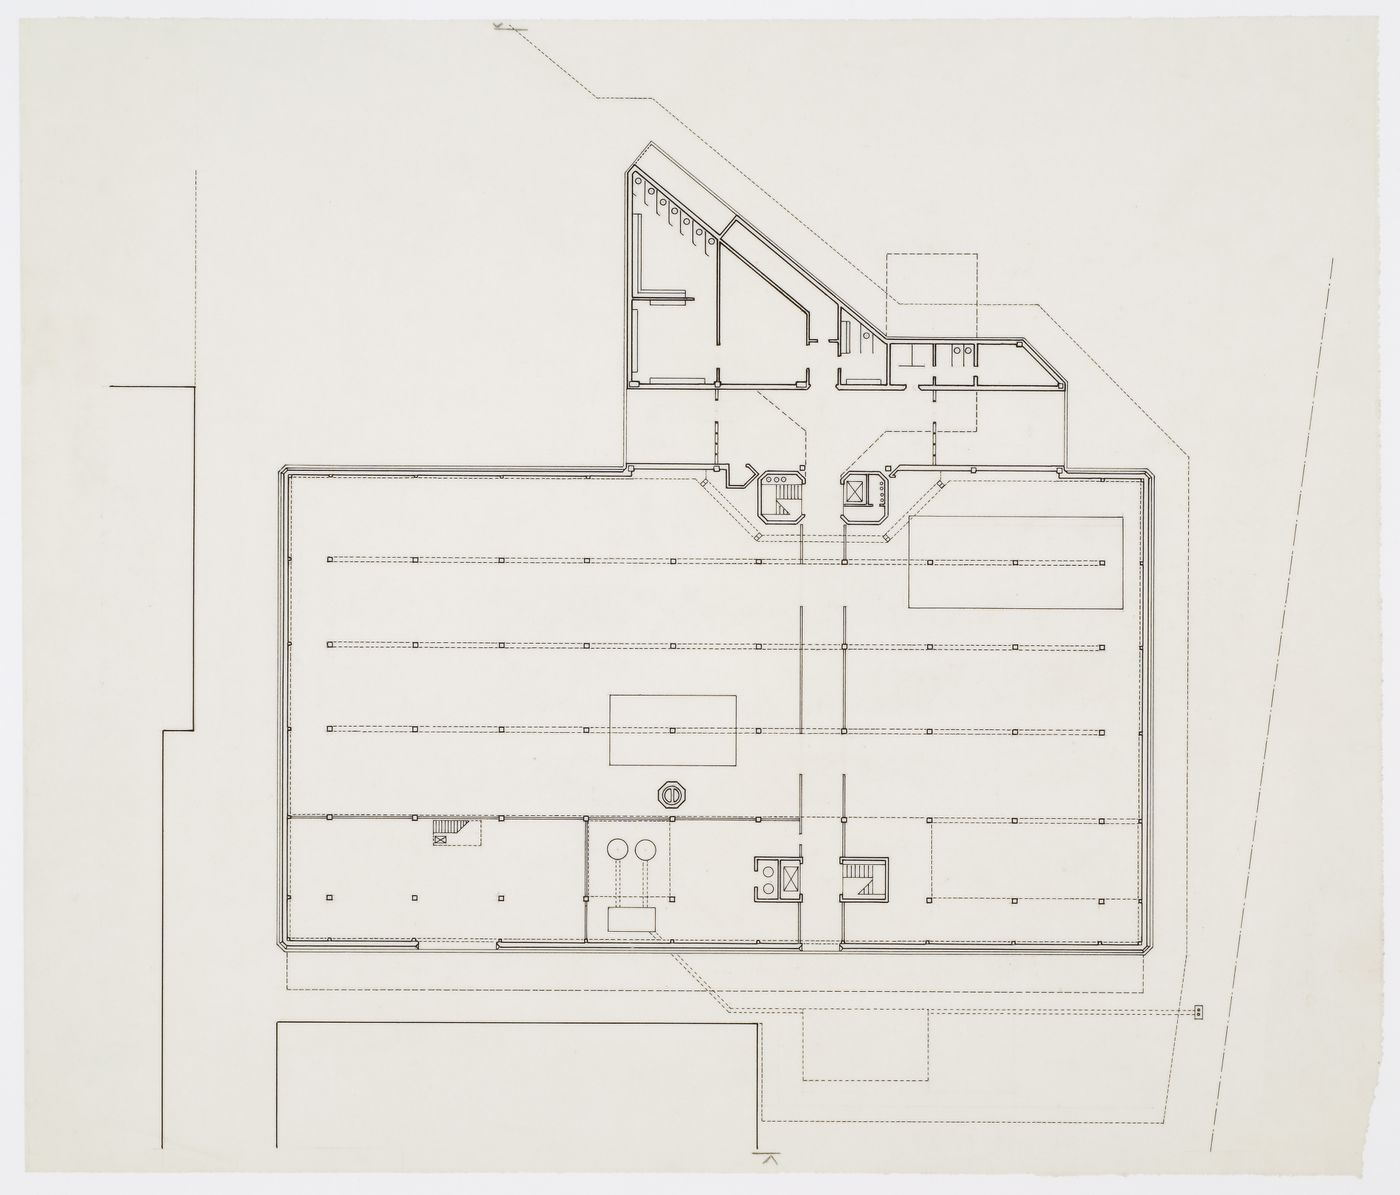 Leicester University Engineering Building, Leicester, England: plan